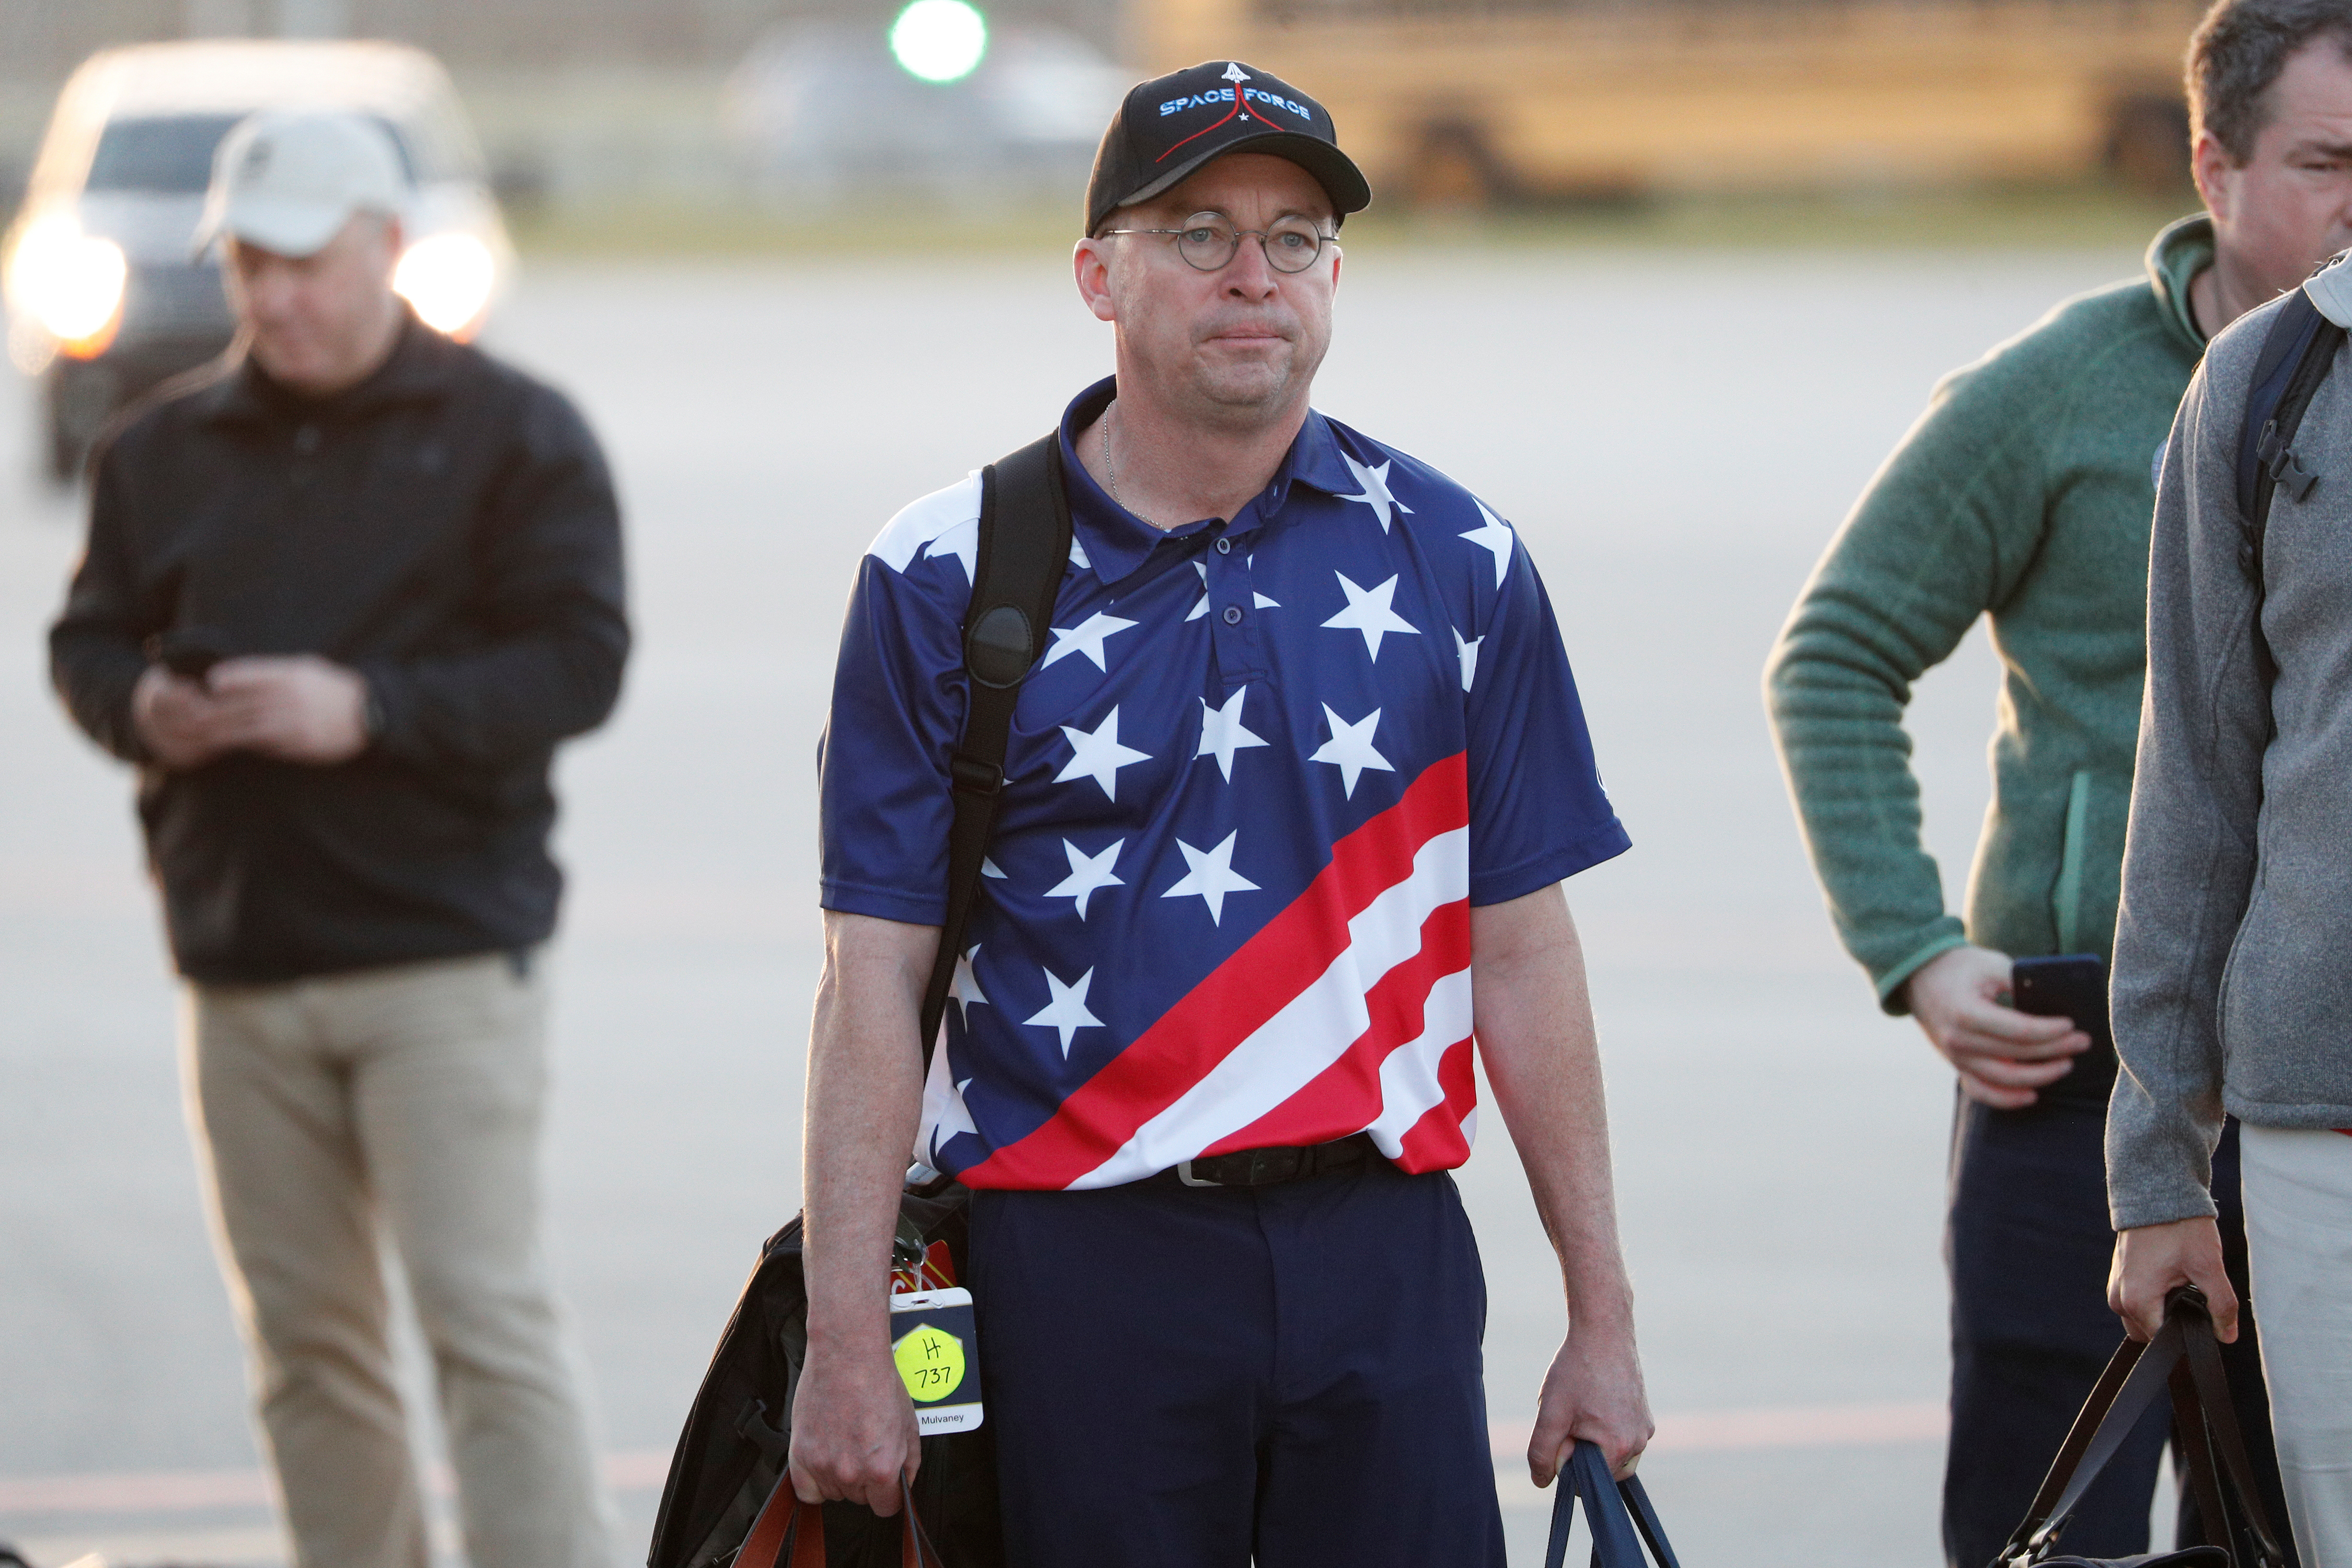 Acting White House Chief of Staff Mick Mulvaney descends from Air Force One wearing a Space Force hat at Palm Beach International Airport in West Palm Beach, Florida, U.S. November 29, 2019. (REUTERS/Tom Brenner)